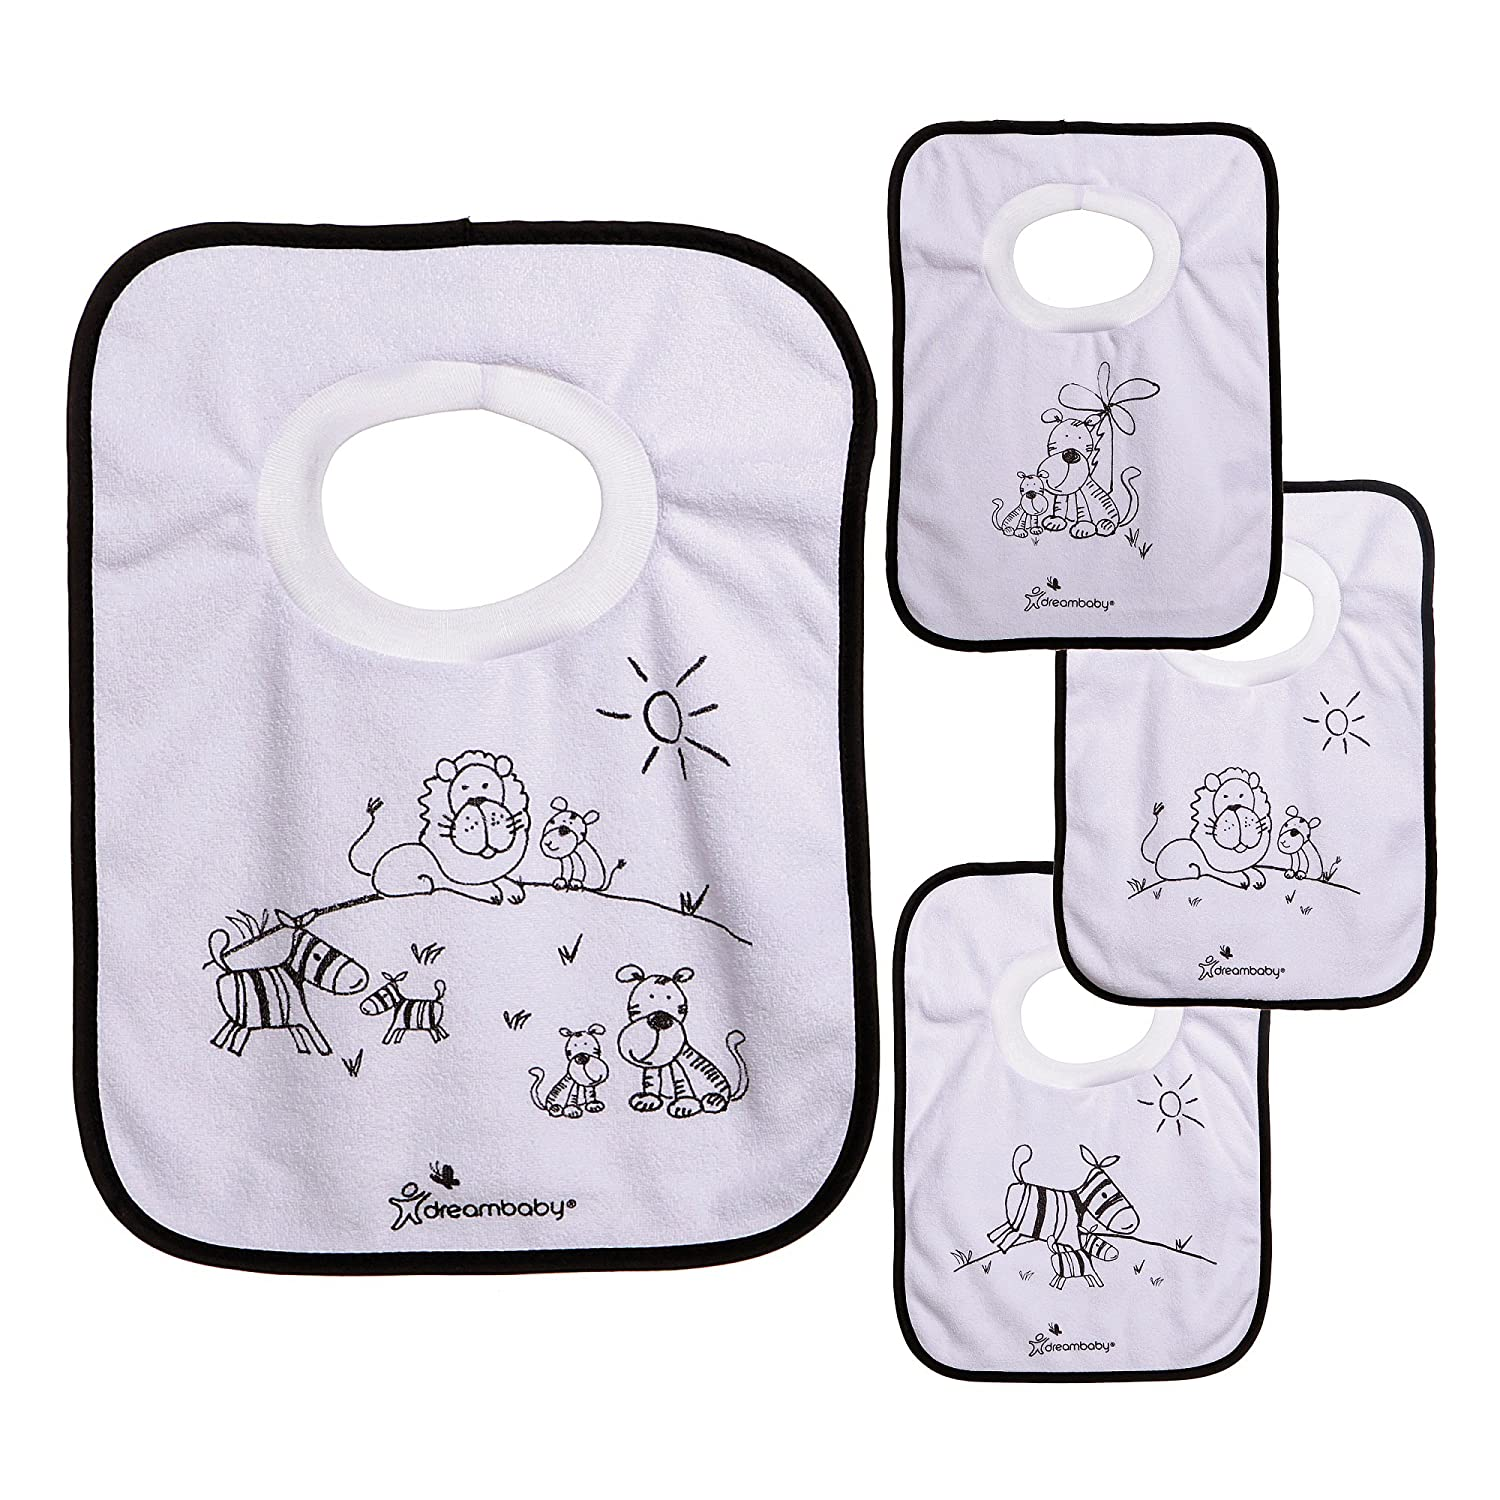 Dreambaby Pullover Bibs,Owls and Whales, 4-Count L536